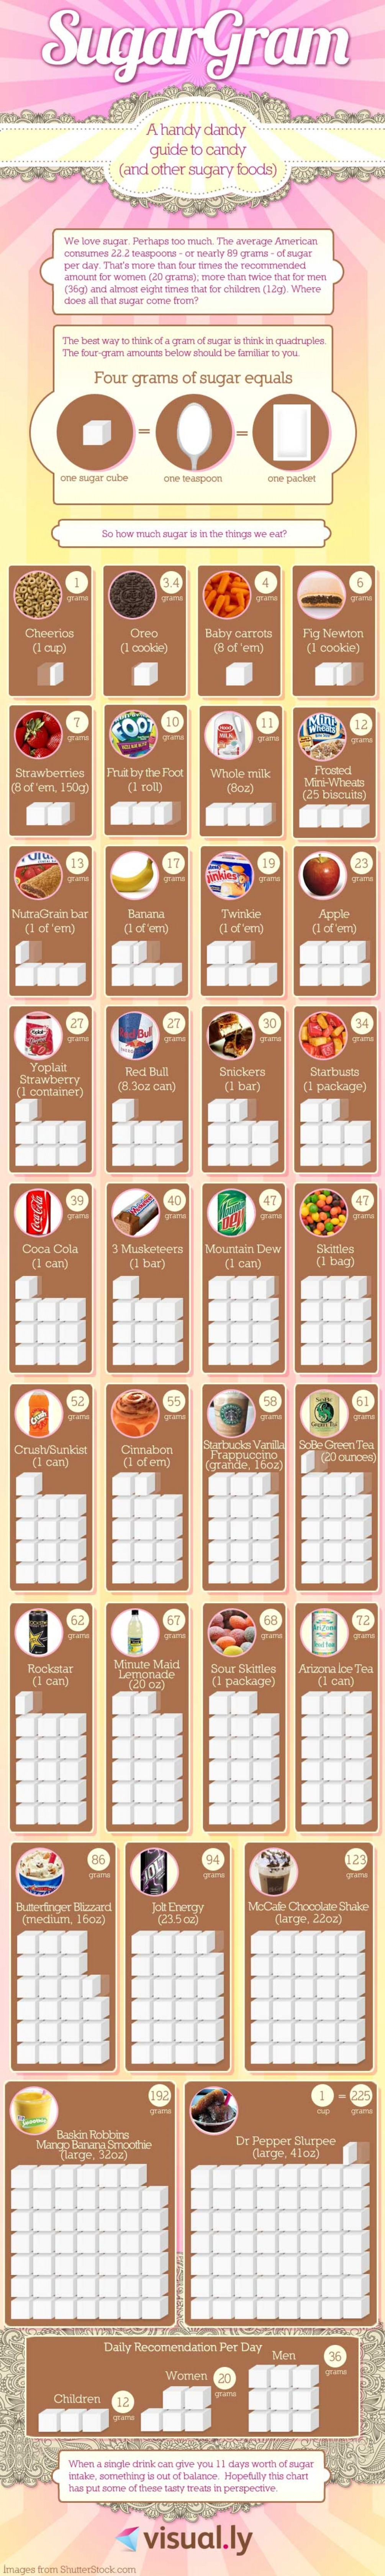 A Wake-Up Call For People with A Sweet Tooth - Infographic